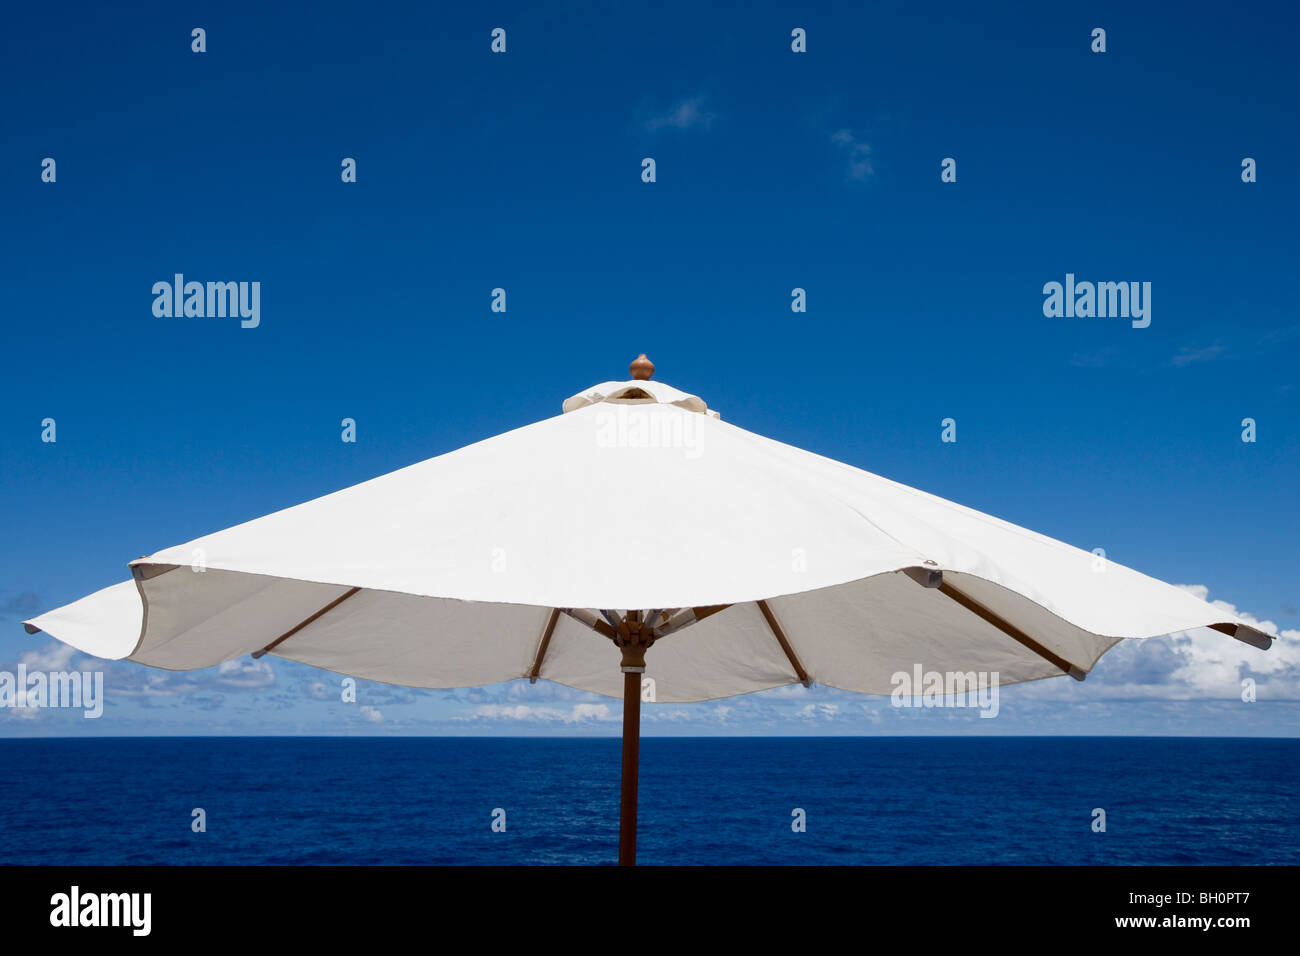 Sunshade in front of ocean and blue sky, South Pacific, Oceania - Stock Image